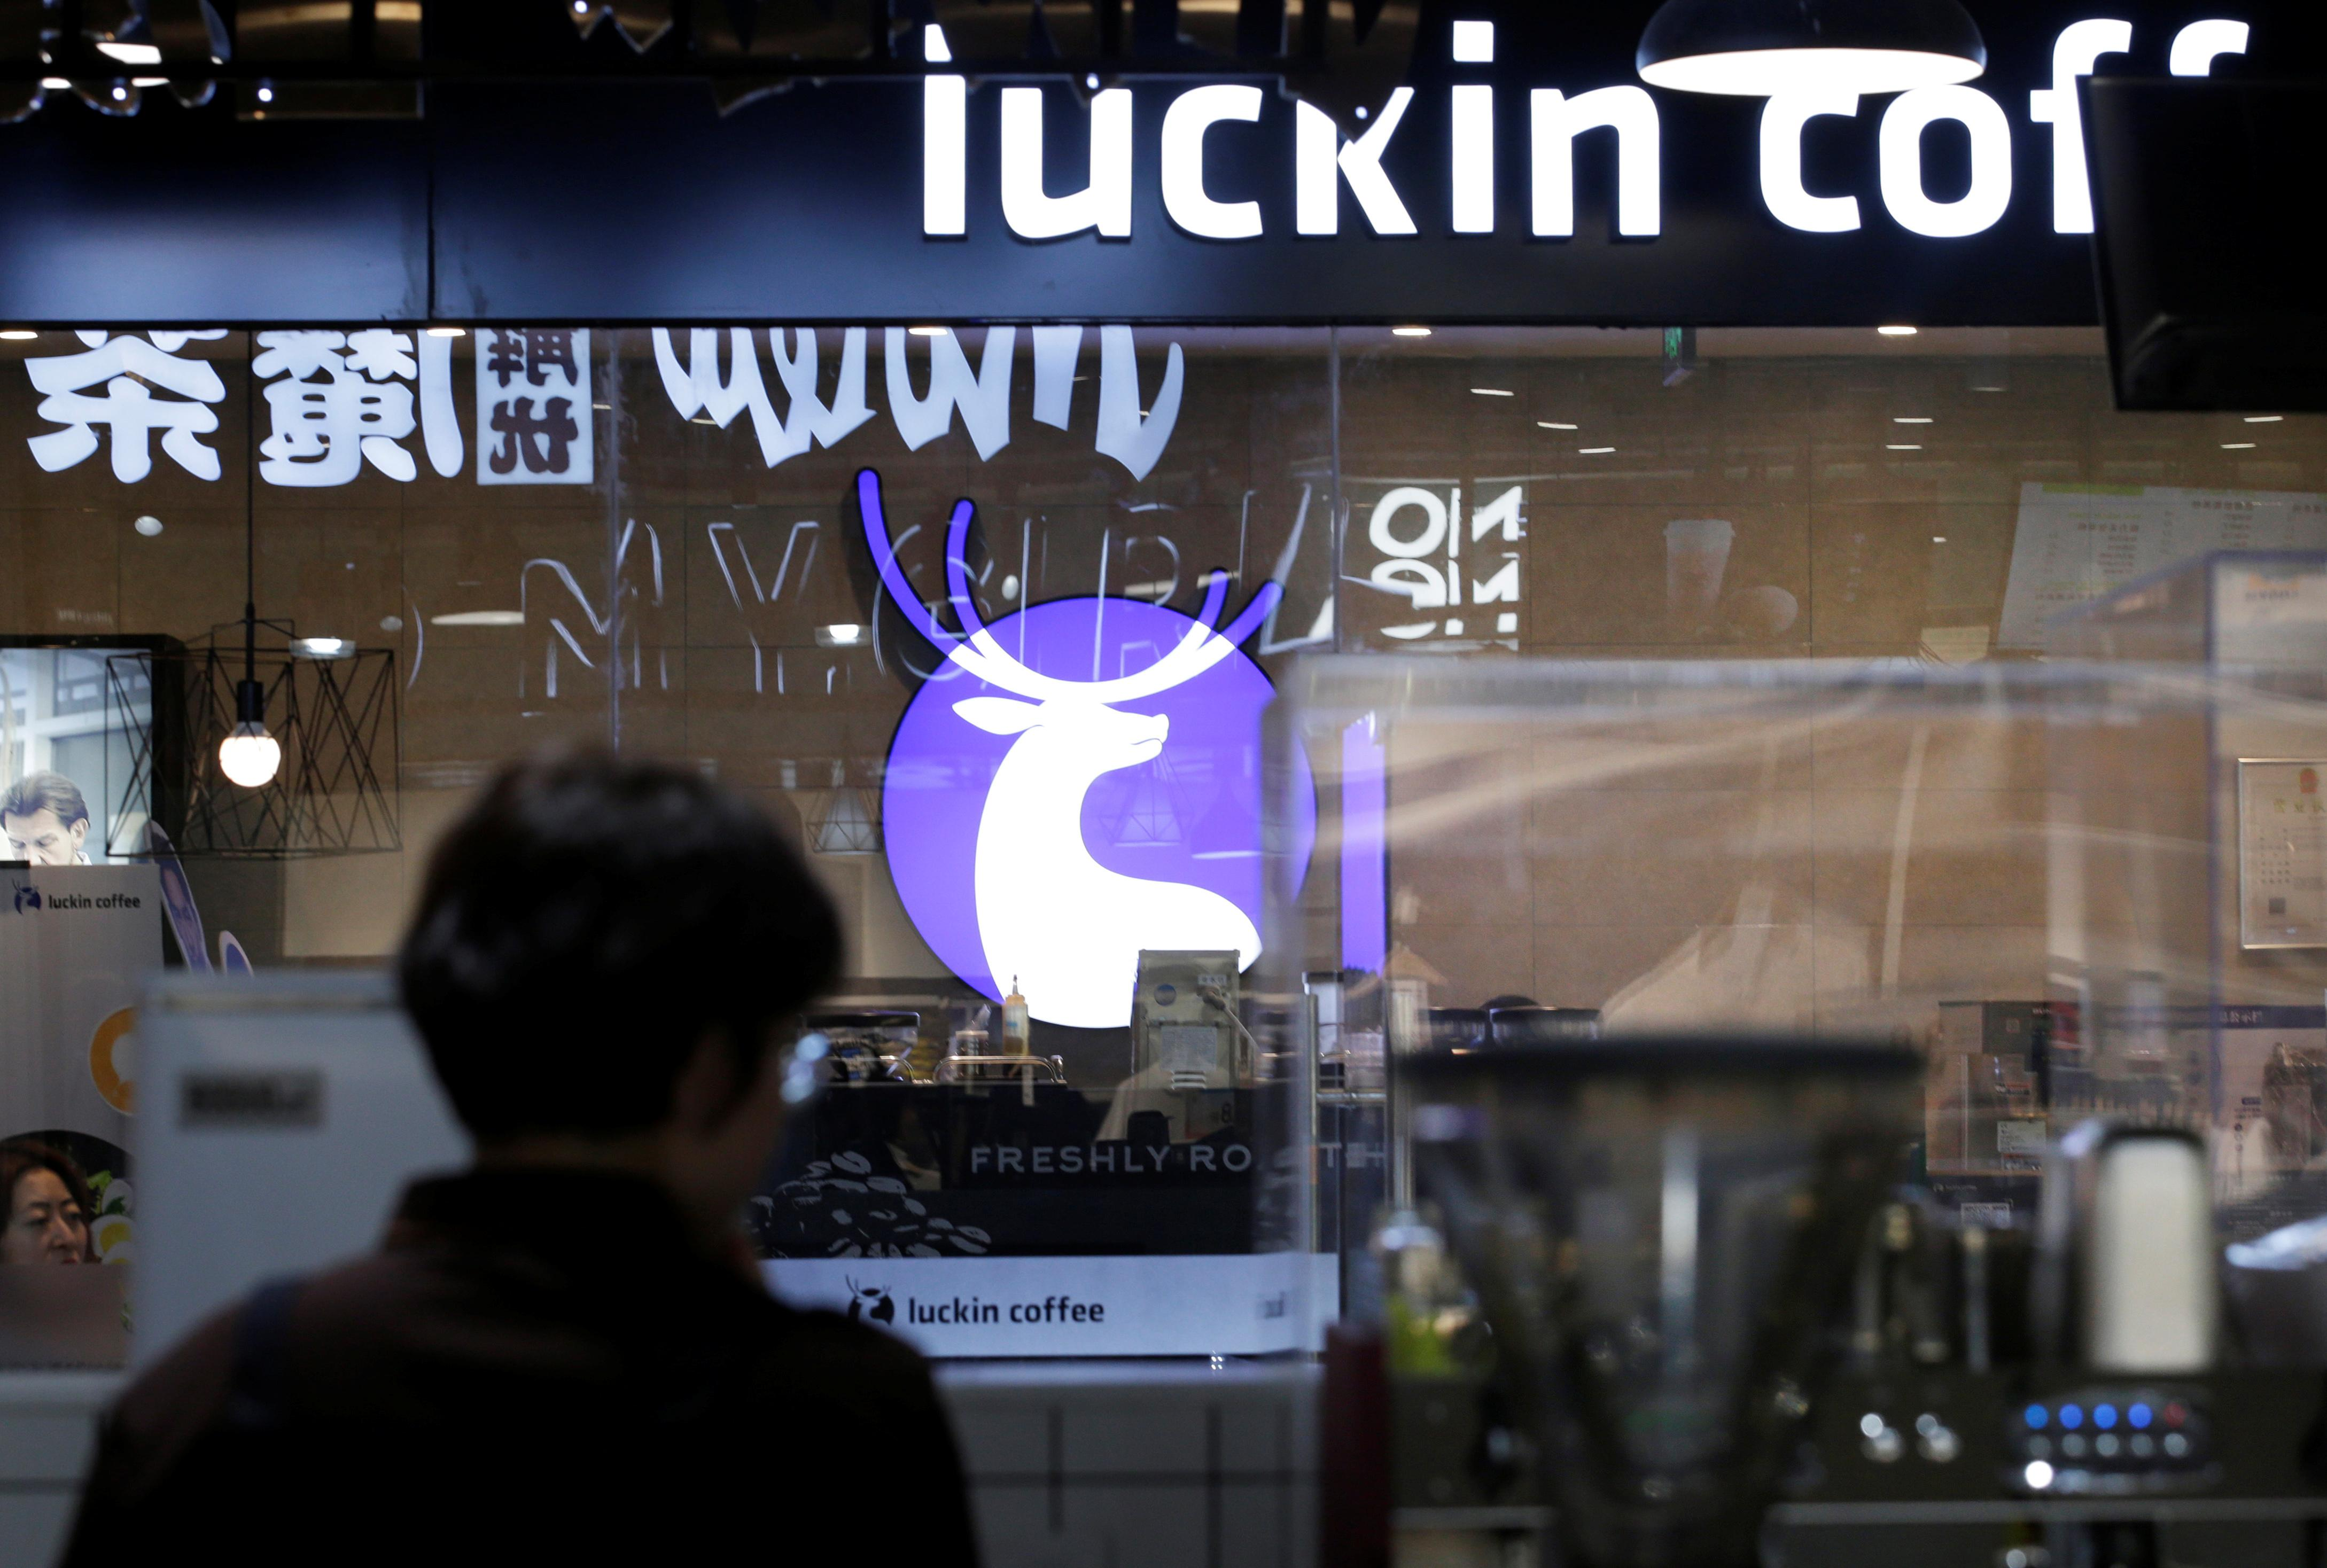 Luckin Coffee will be larger than Starbucks in China before 2020: CFO